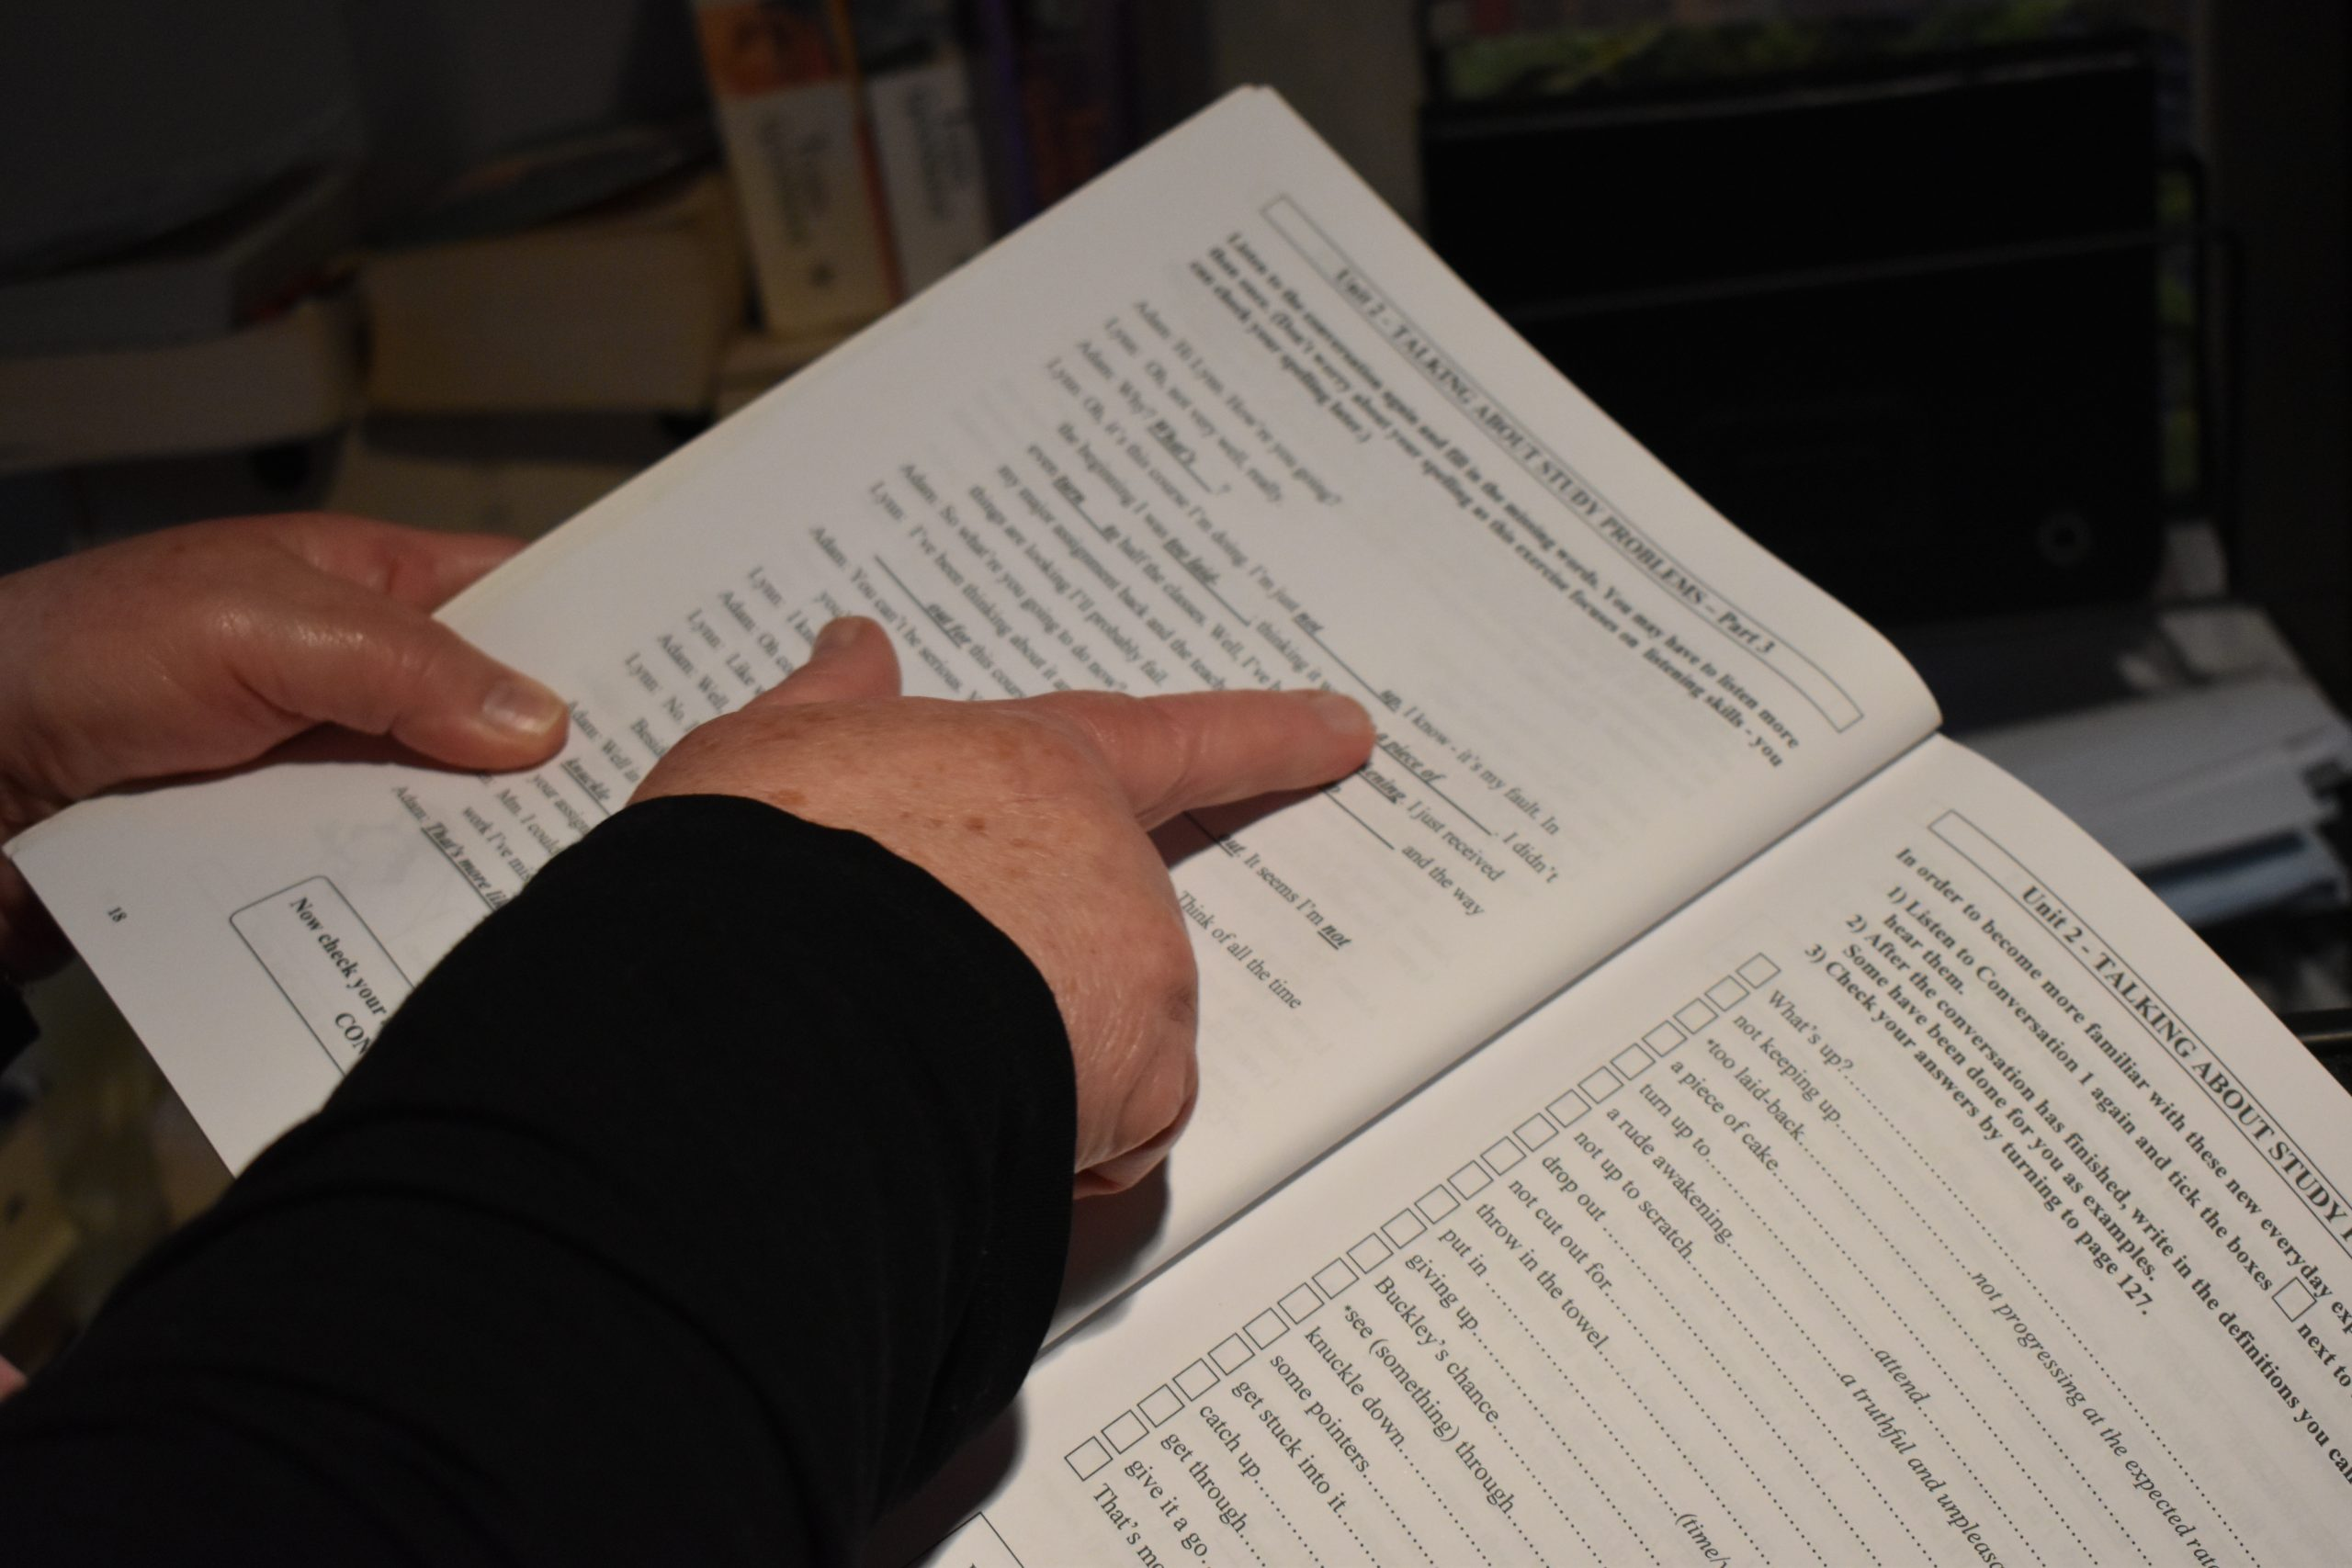 Woman pointing to words on a page